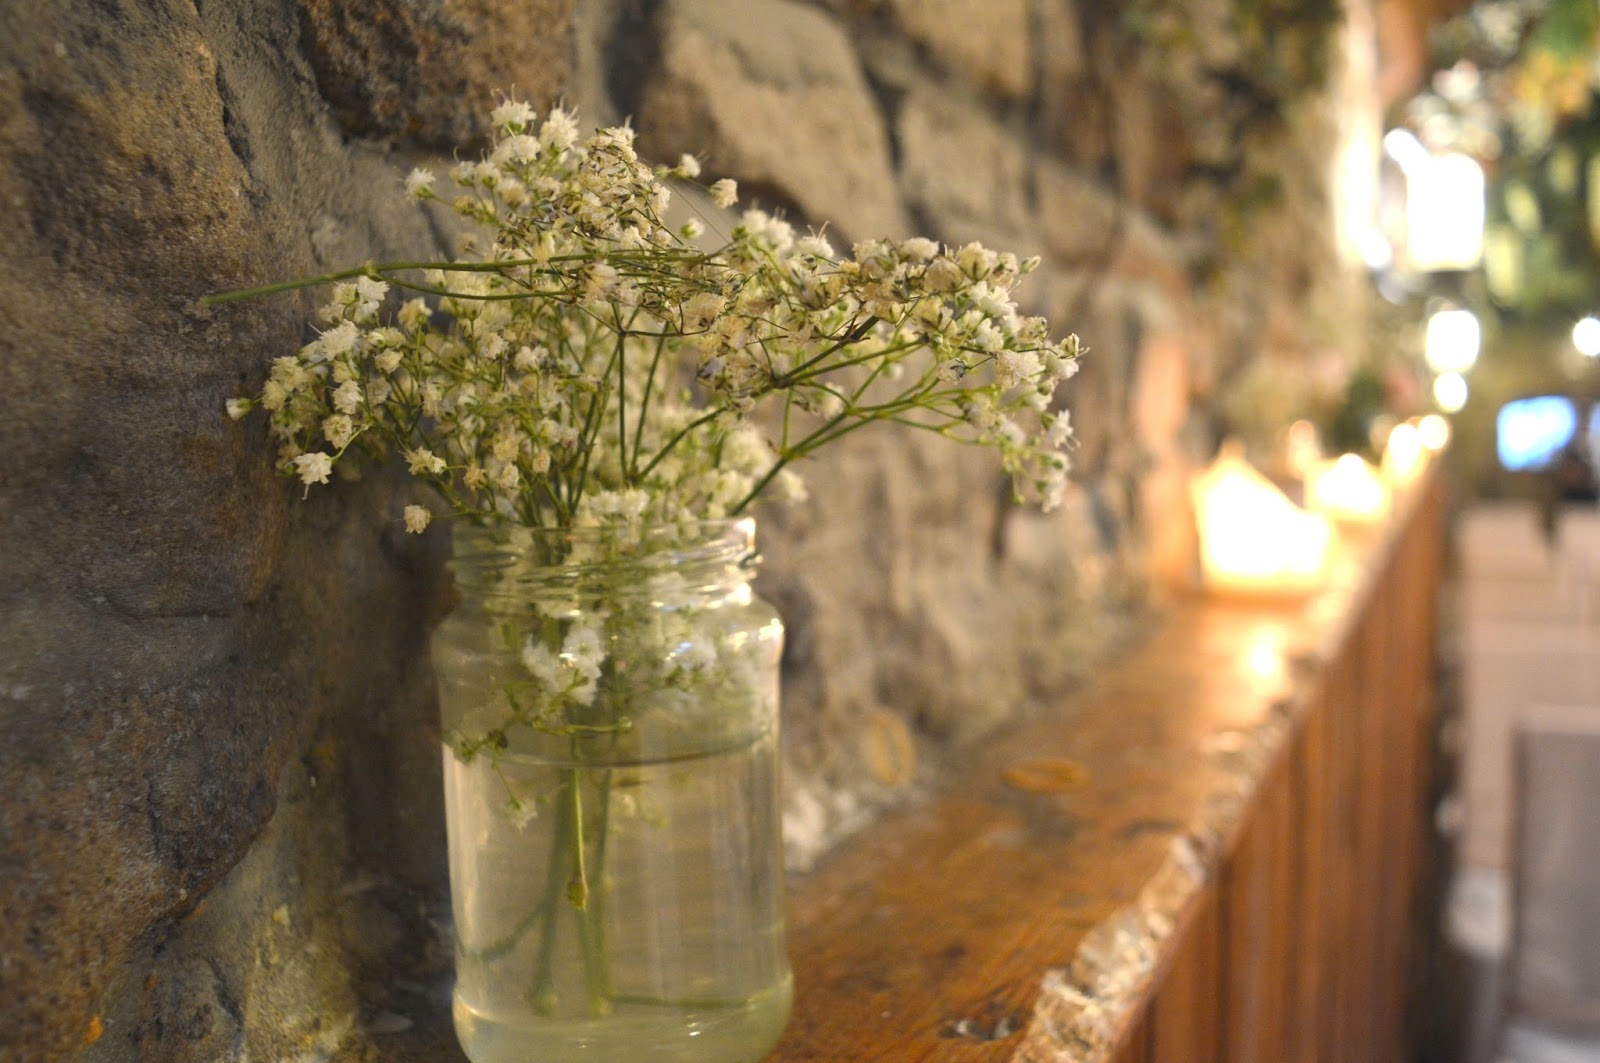 Weddings at the South Causey Inn, County Durham - Tree House Suite - Gypsophila